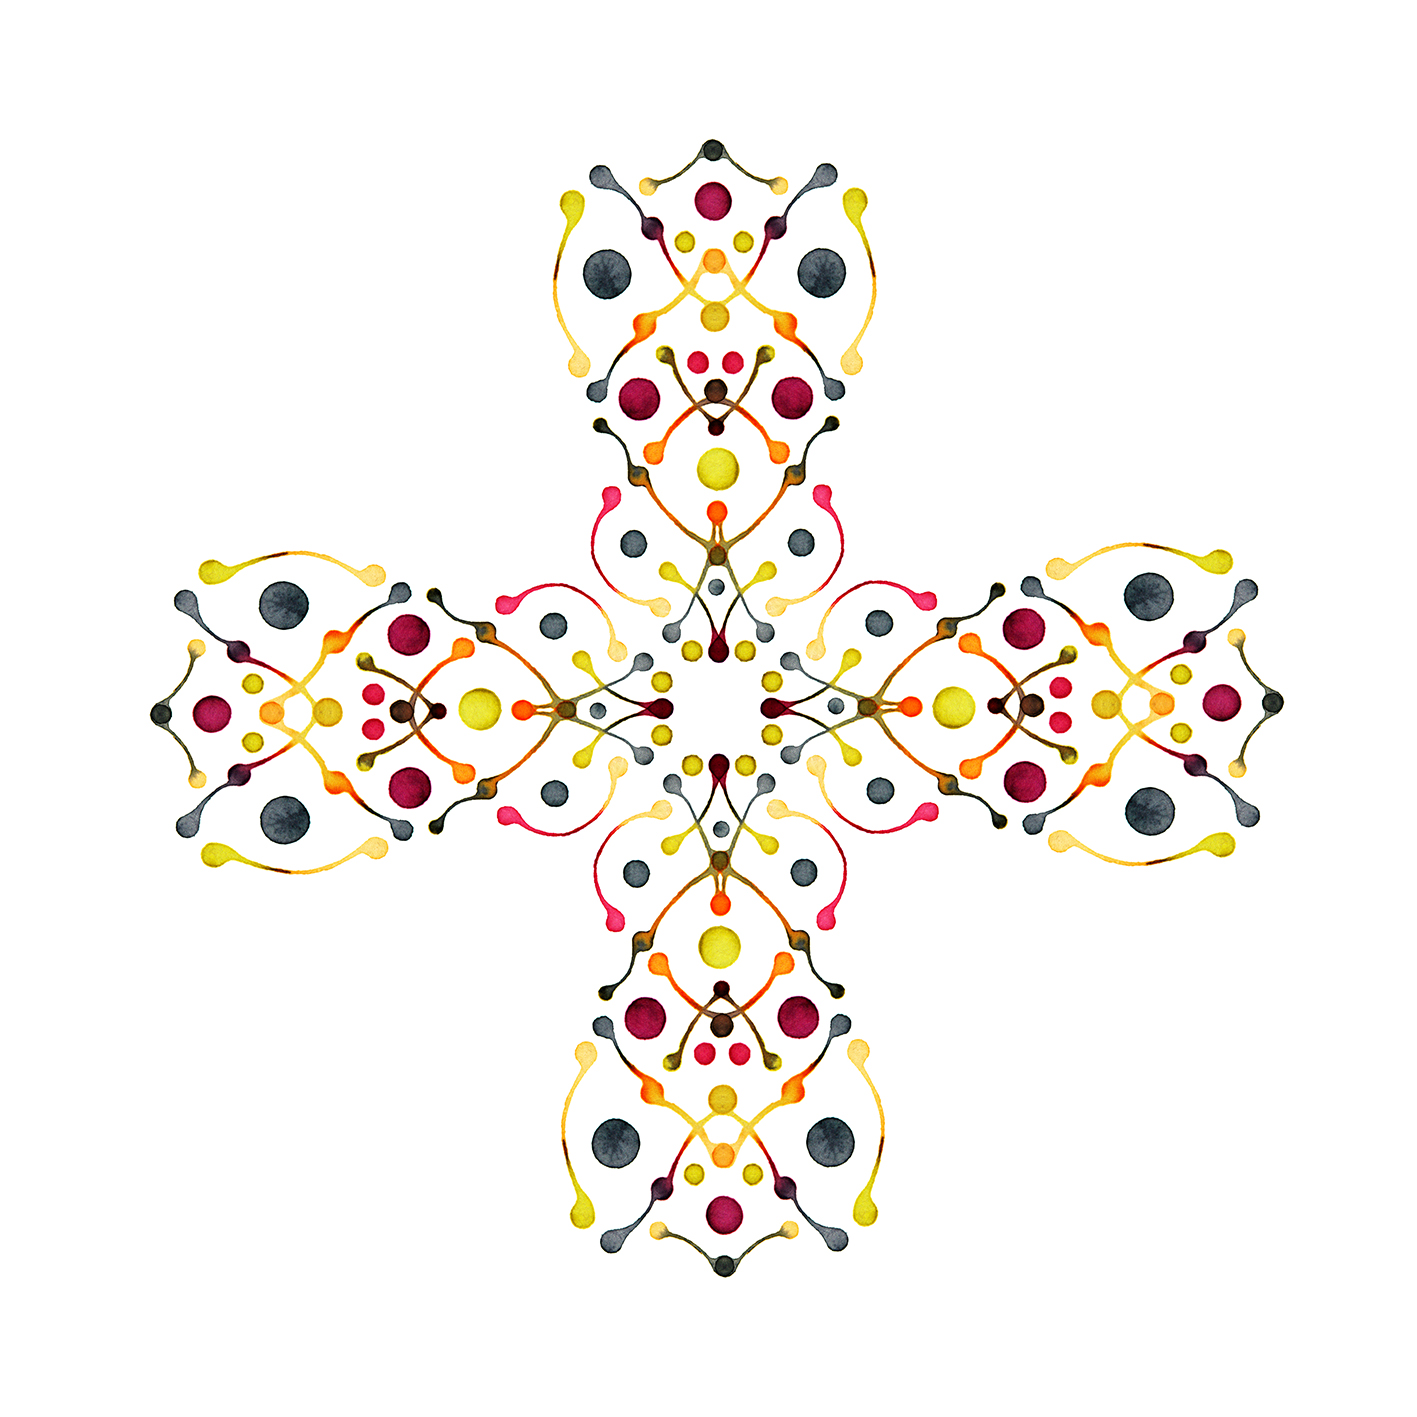 cross_dotting_abstract_3_1_1_72